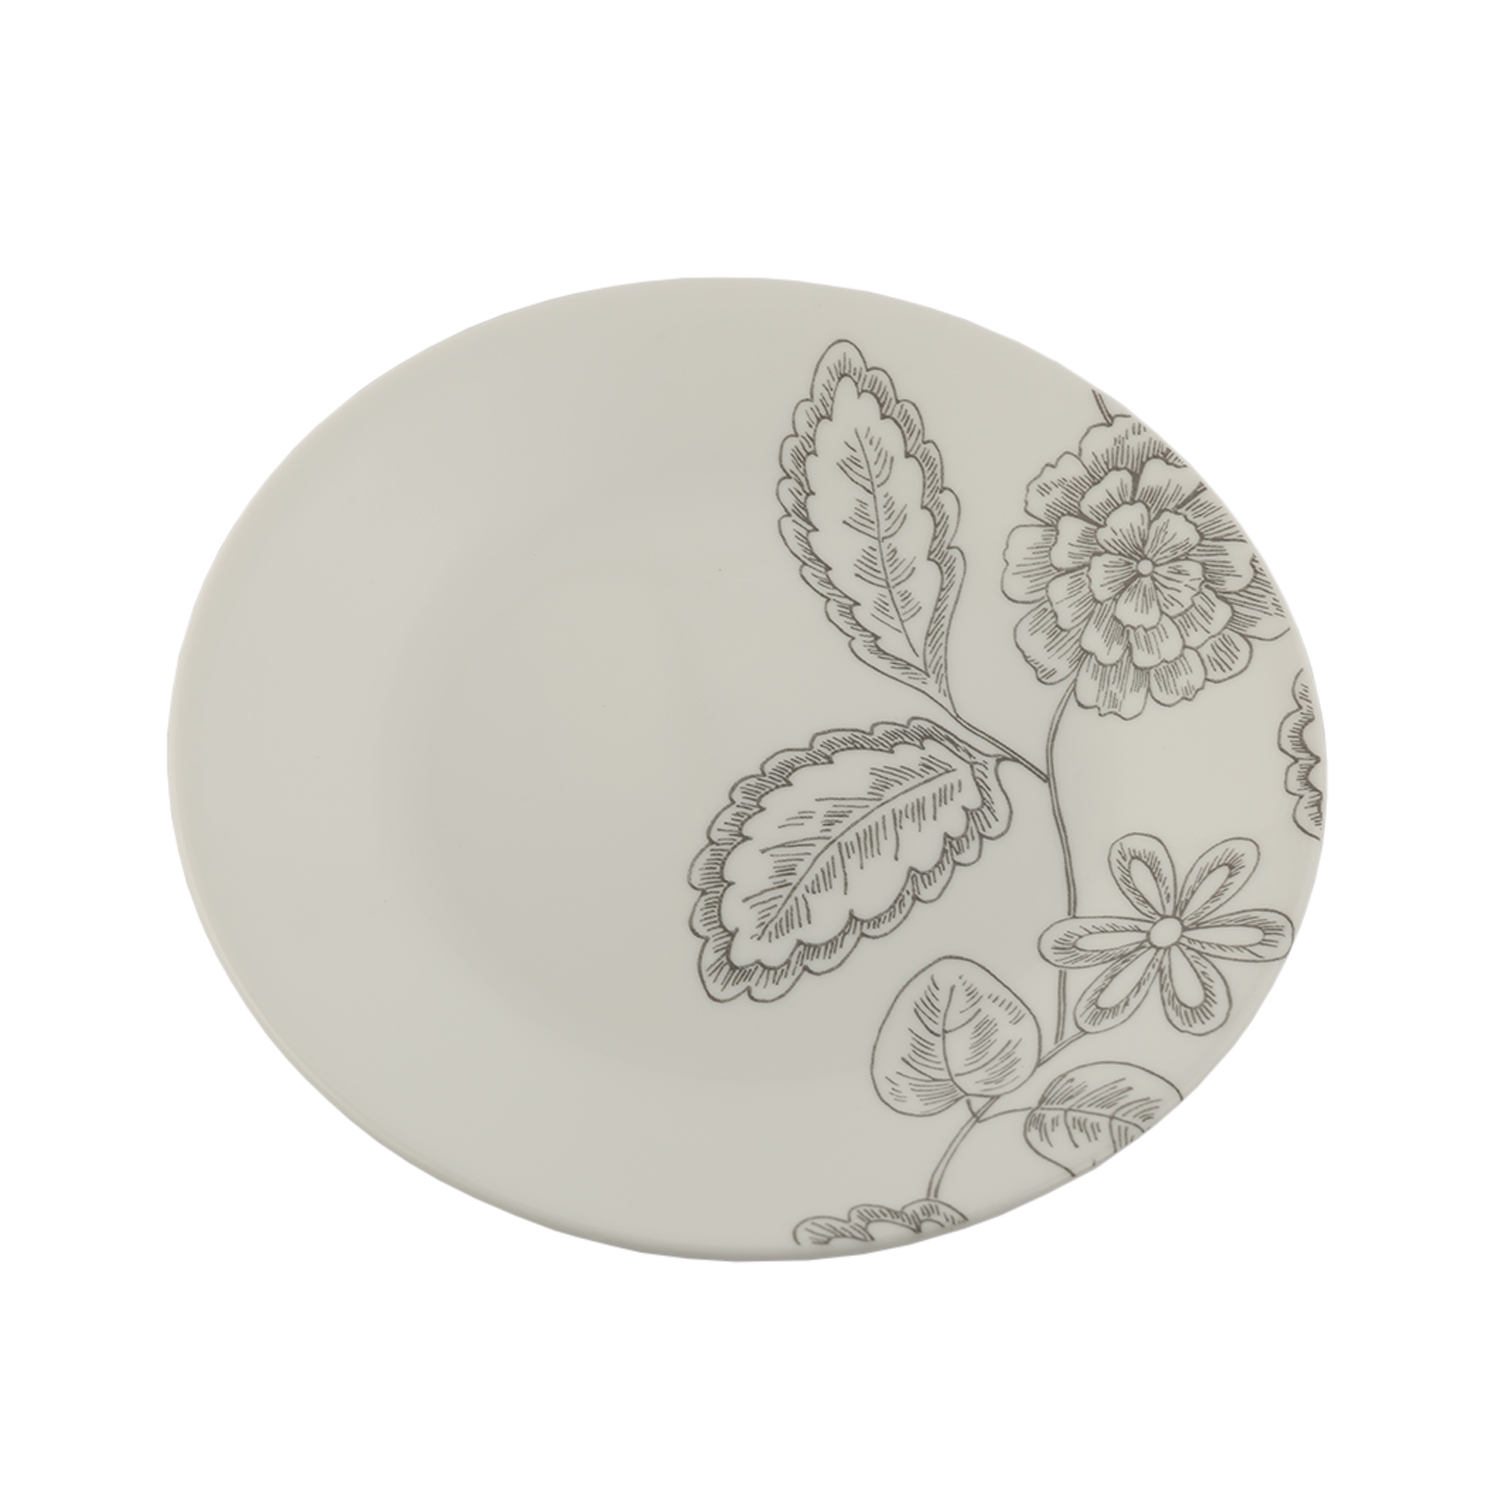 Core Dinner Plate Remini 1125452 Glass Plates in White Colour by Corelle